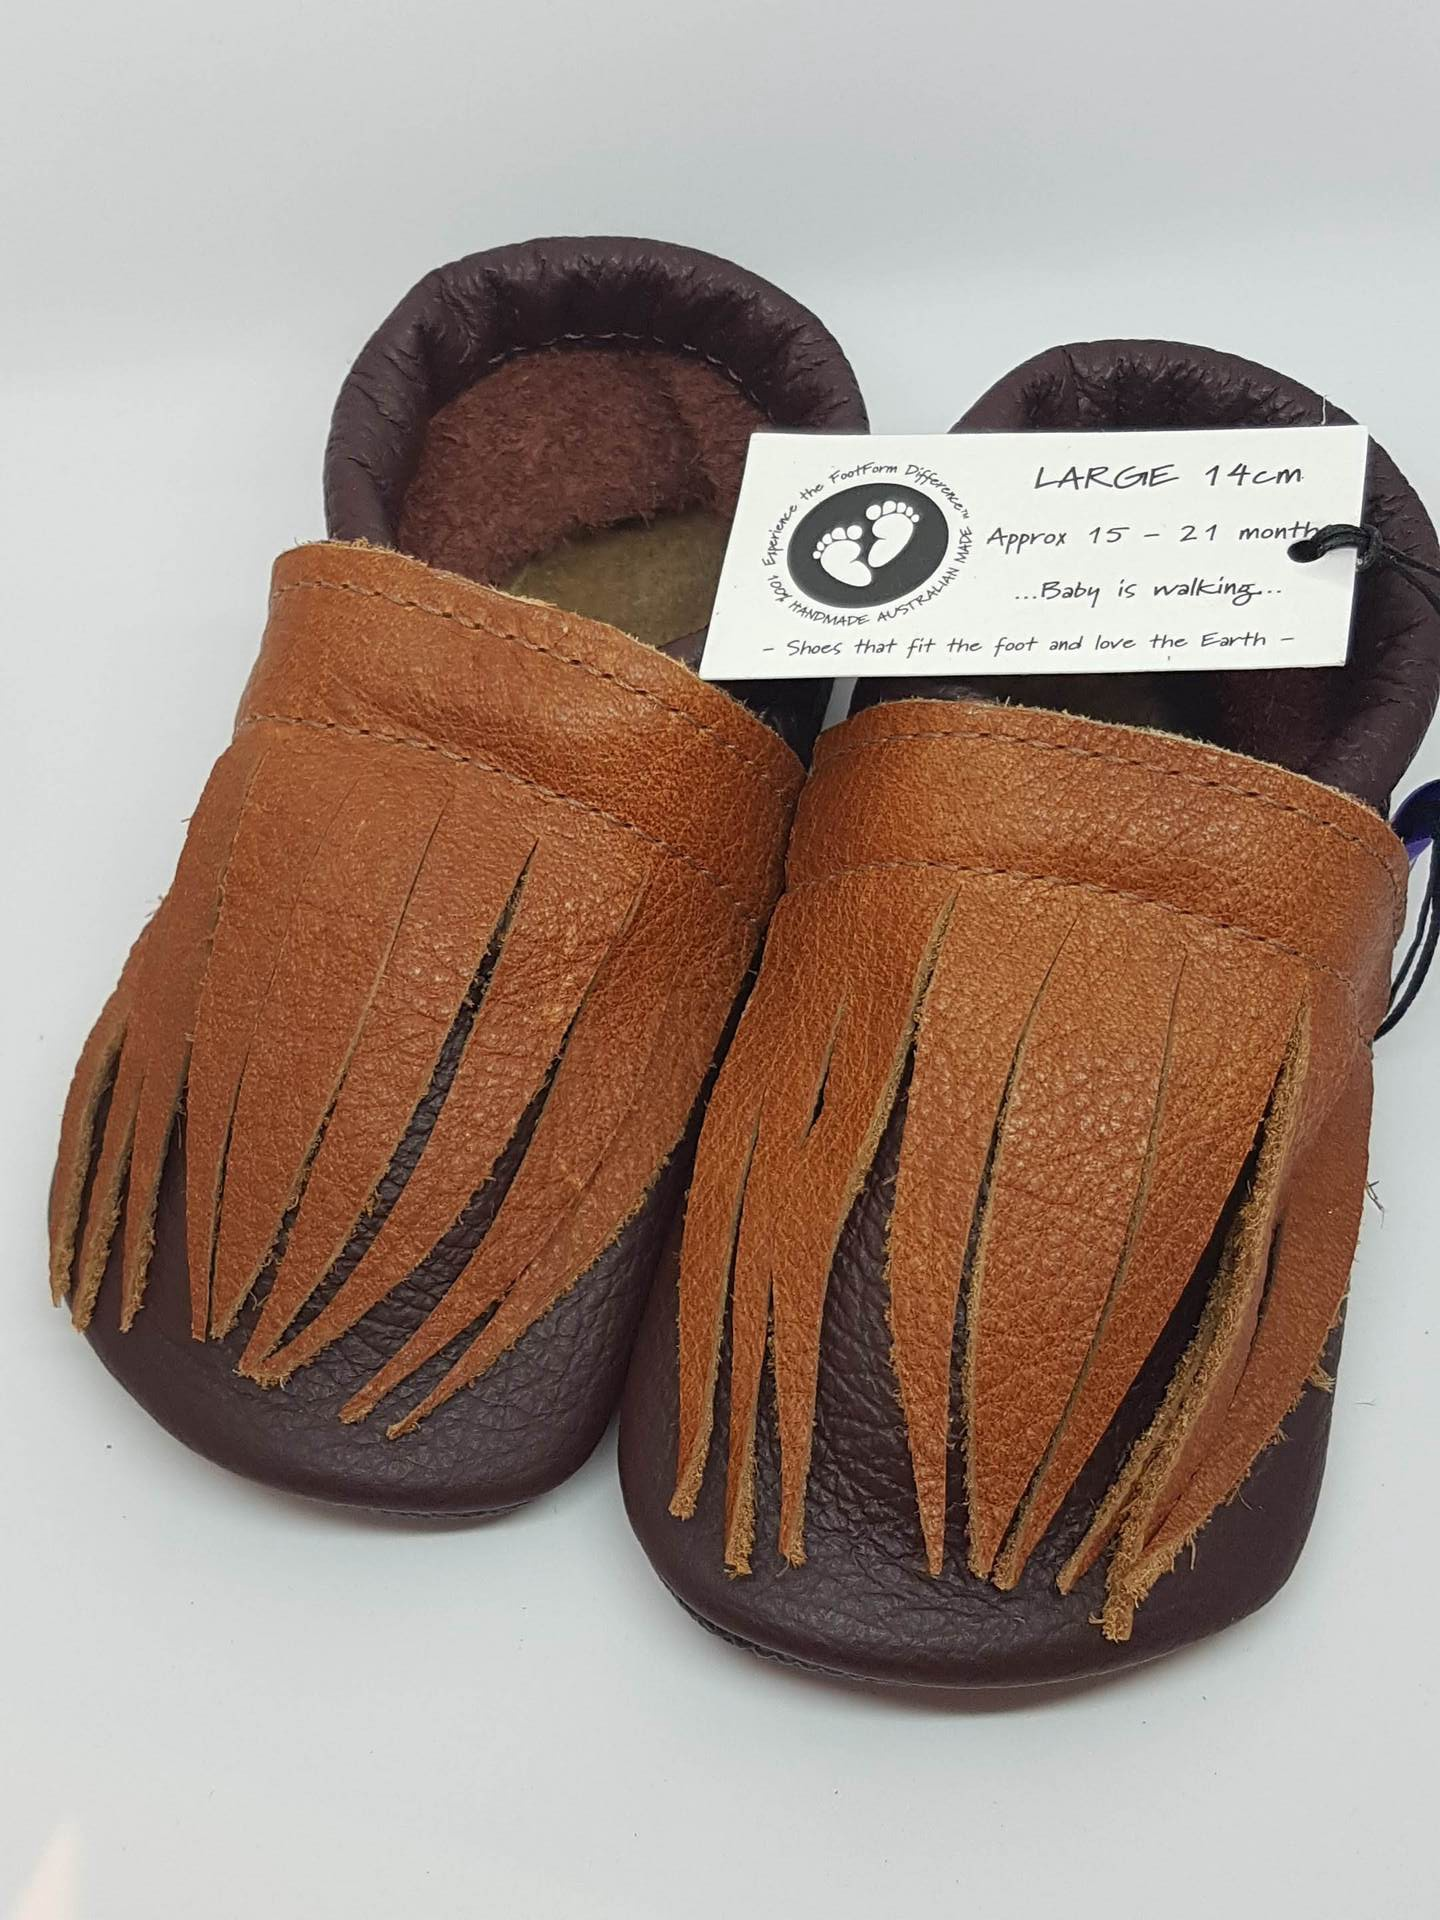 Leather toddler Shoes with fringe detail - size Large